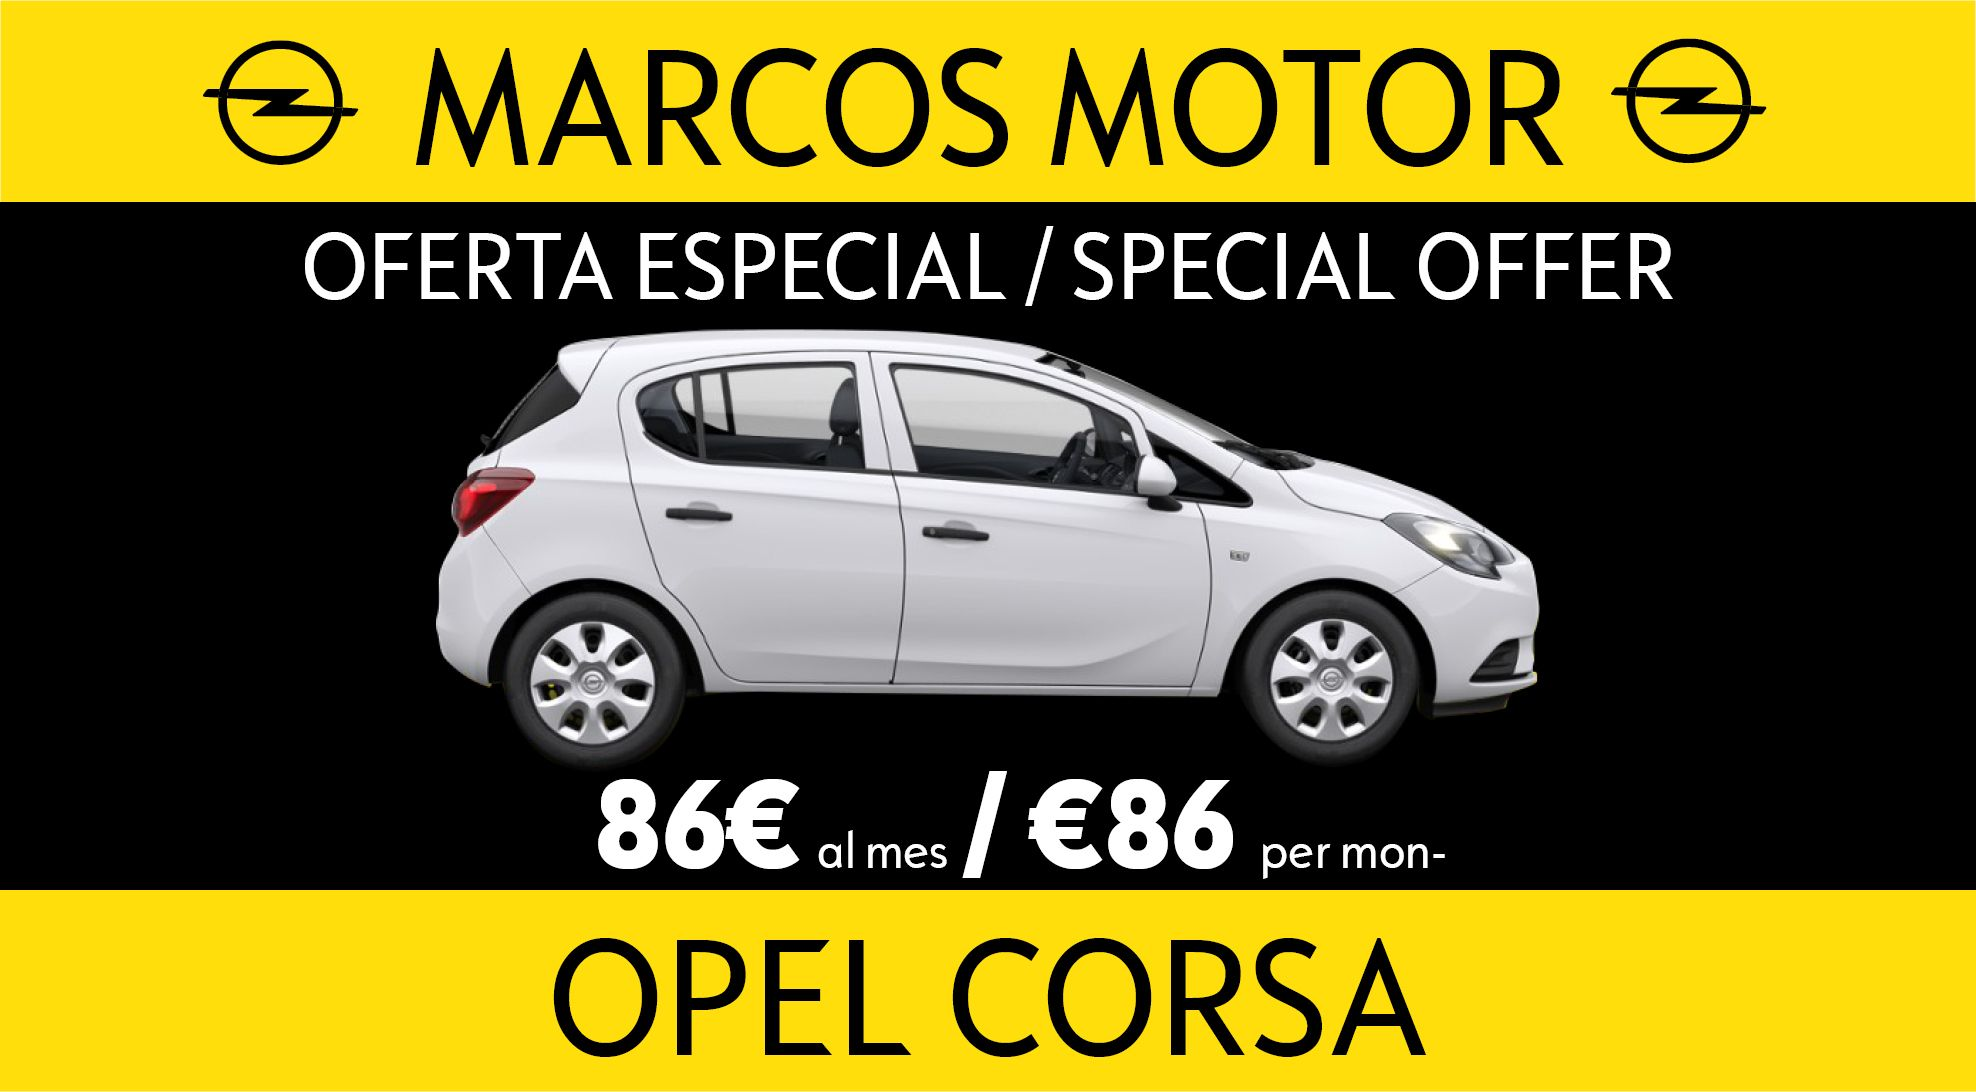 Opel Corsa Offer € 86 per month